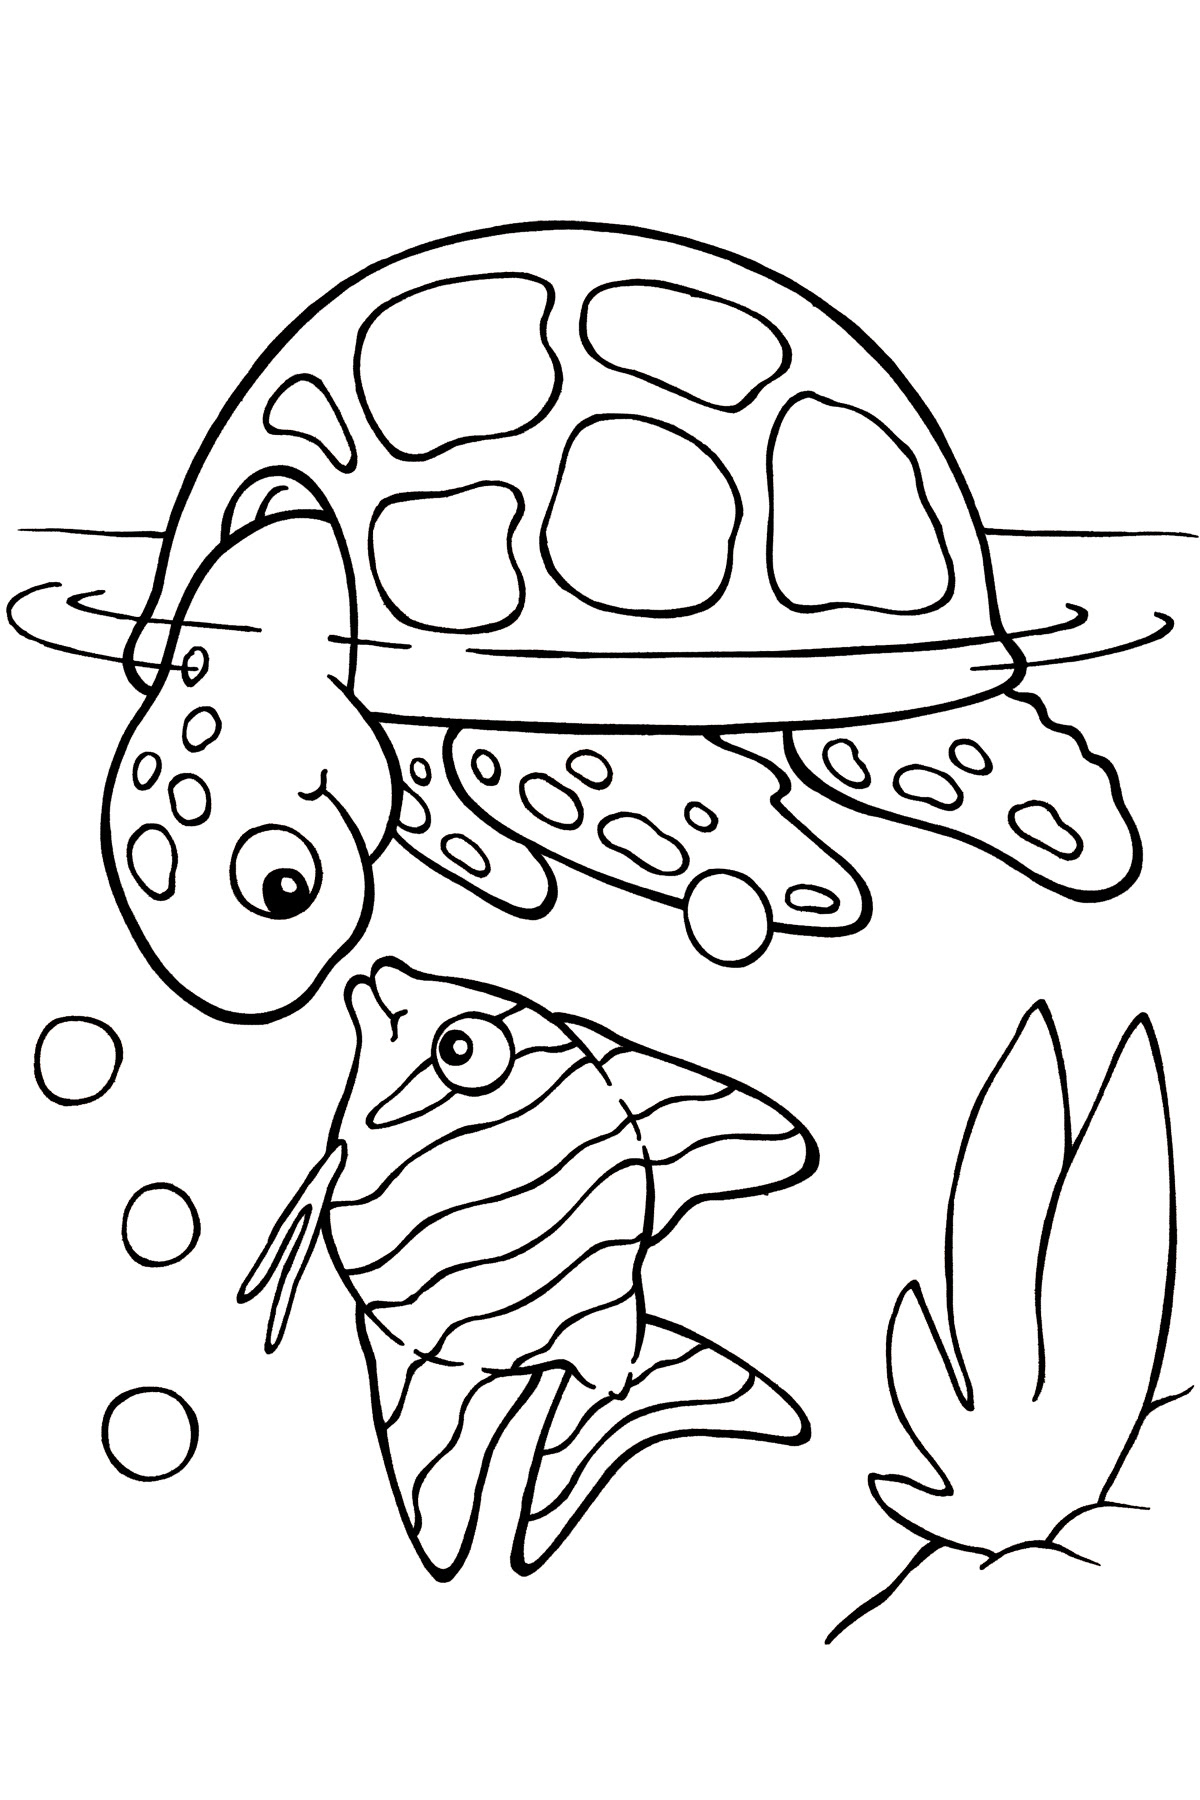 Sea fish coloring pages download and print for free